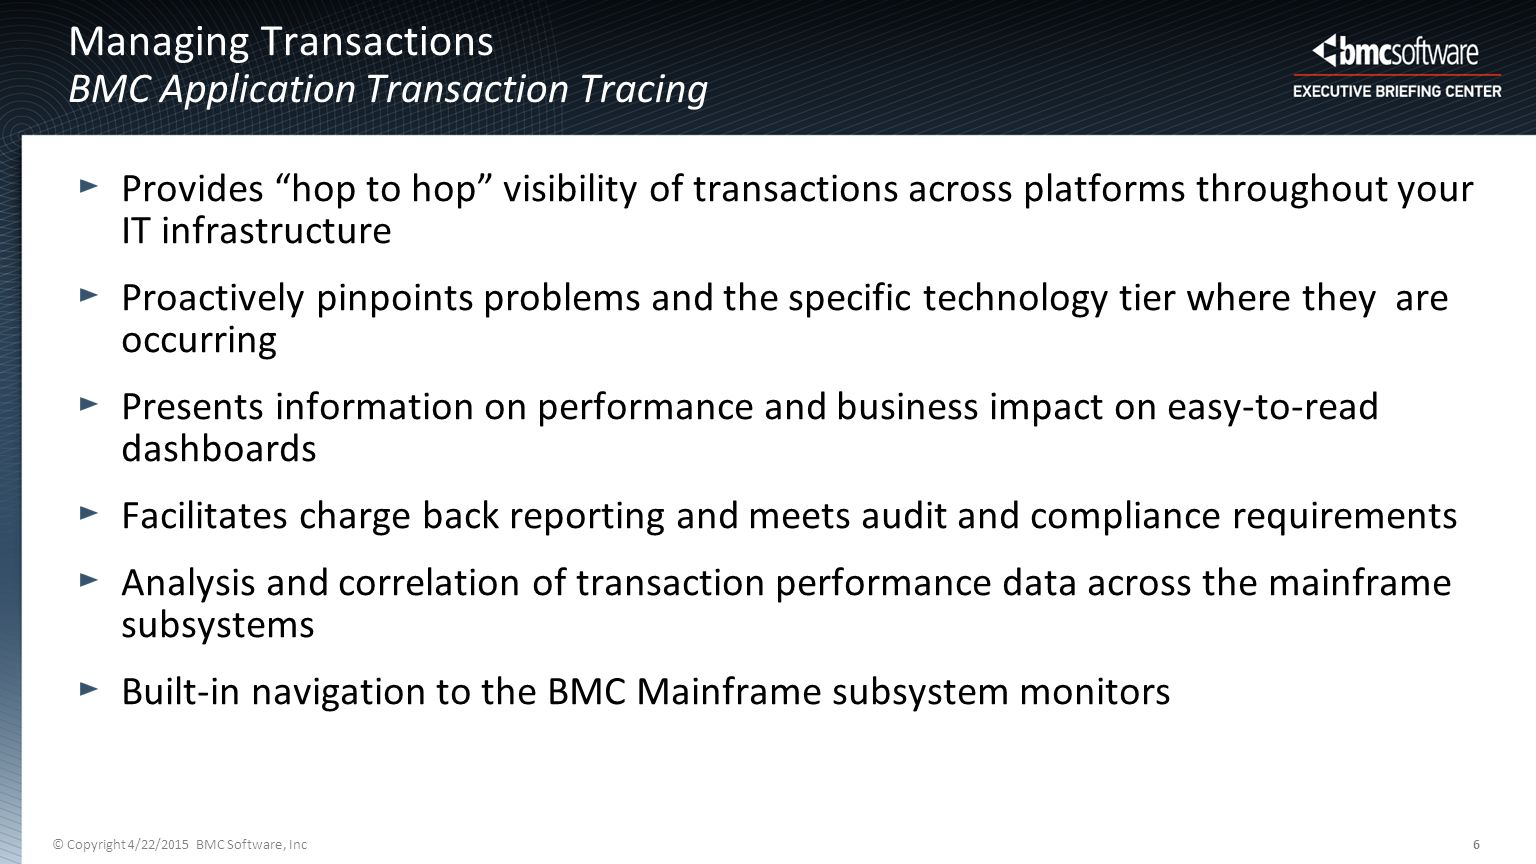 © Copyright 4/22/2015 BMC Software, Inc6 Managing Transactions BMC Application Transaction Tracing Provides hop to hop visibility of transactions across platforms throughout your IT infrastructure Proactively pinpoints problems and the specific technology tier where they are occurring Presents information on performance and business impact on easy-to-read dashboards Facilitates charge back reporting and meets audit and compliance requirements Analysis and correlation of transaction performance data across the mainframe subsystems Built-in navigation to the BMC Mainframe subsystem monitors